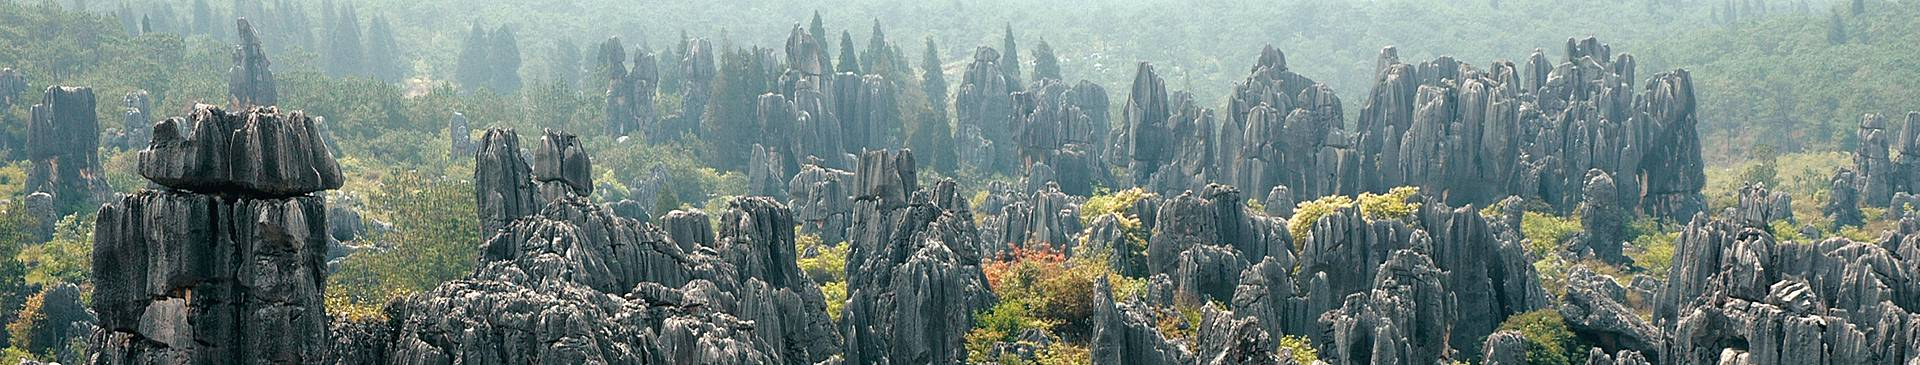 Nature in China